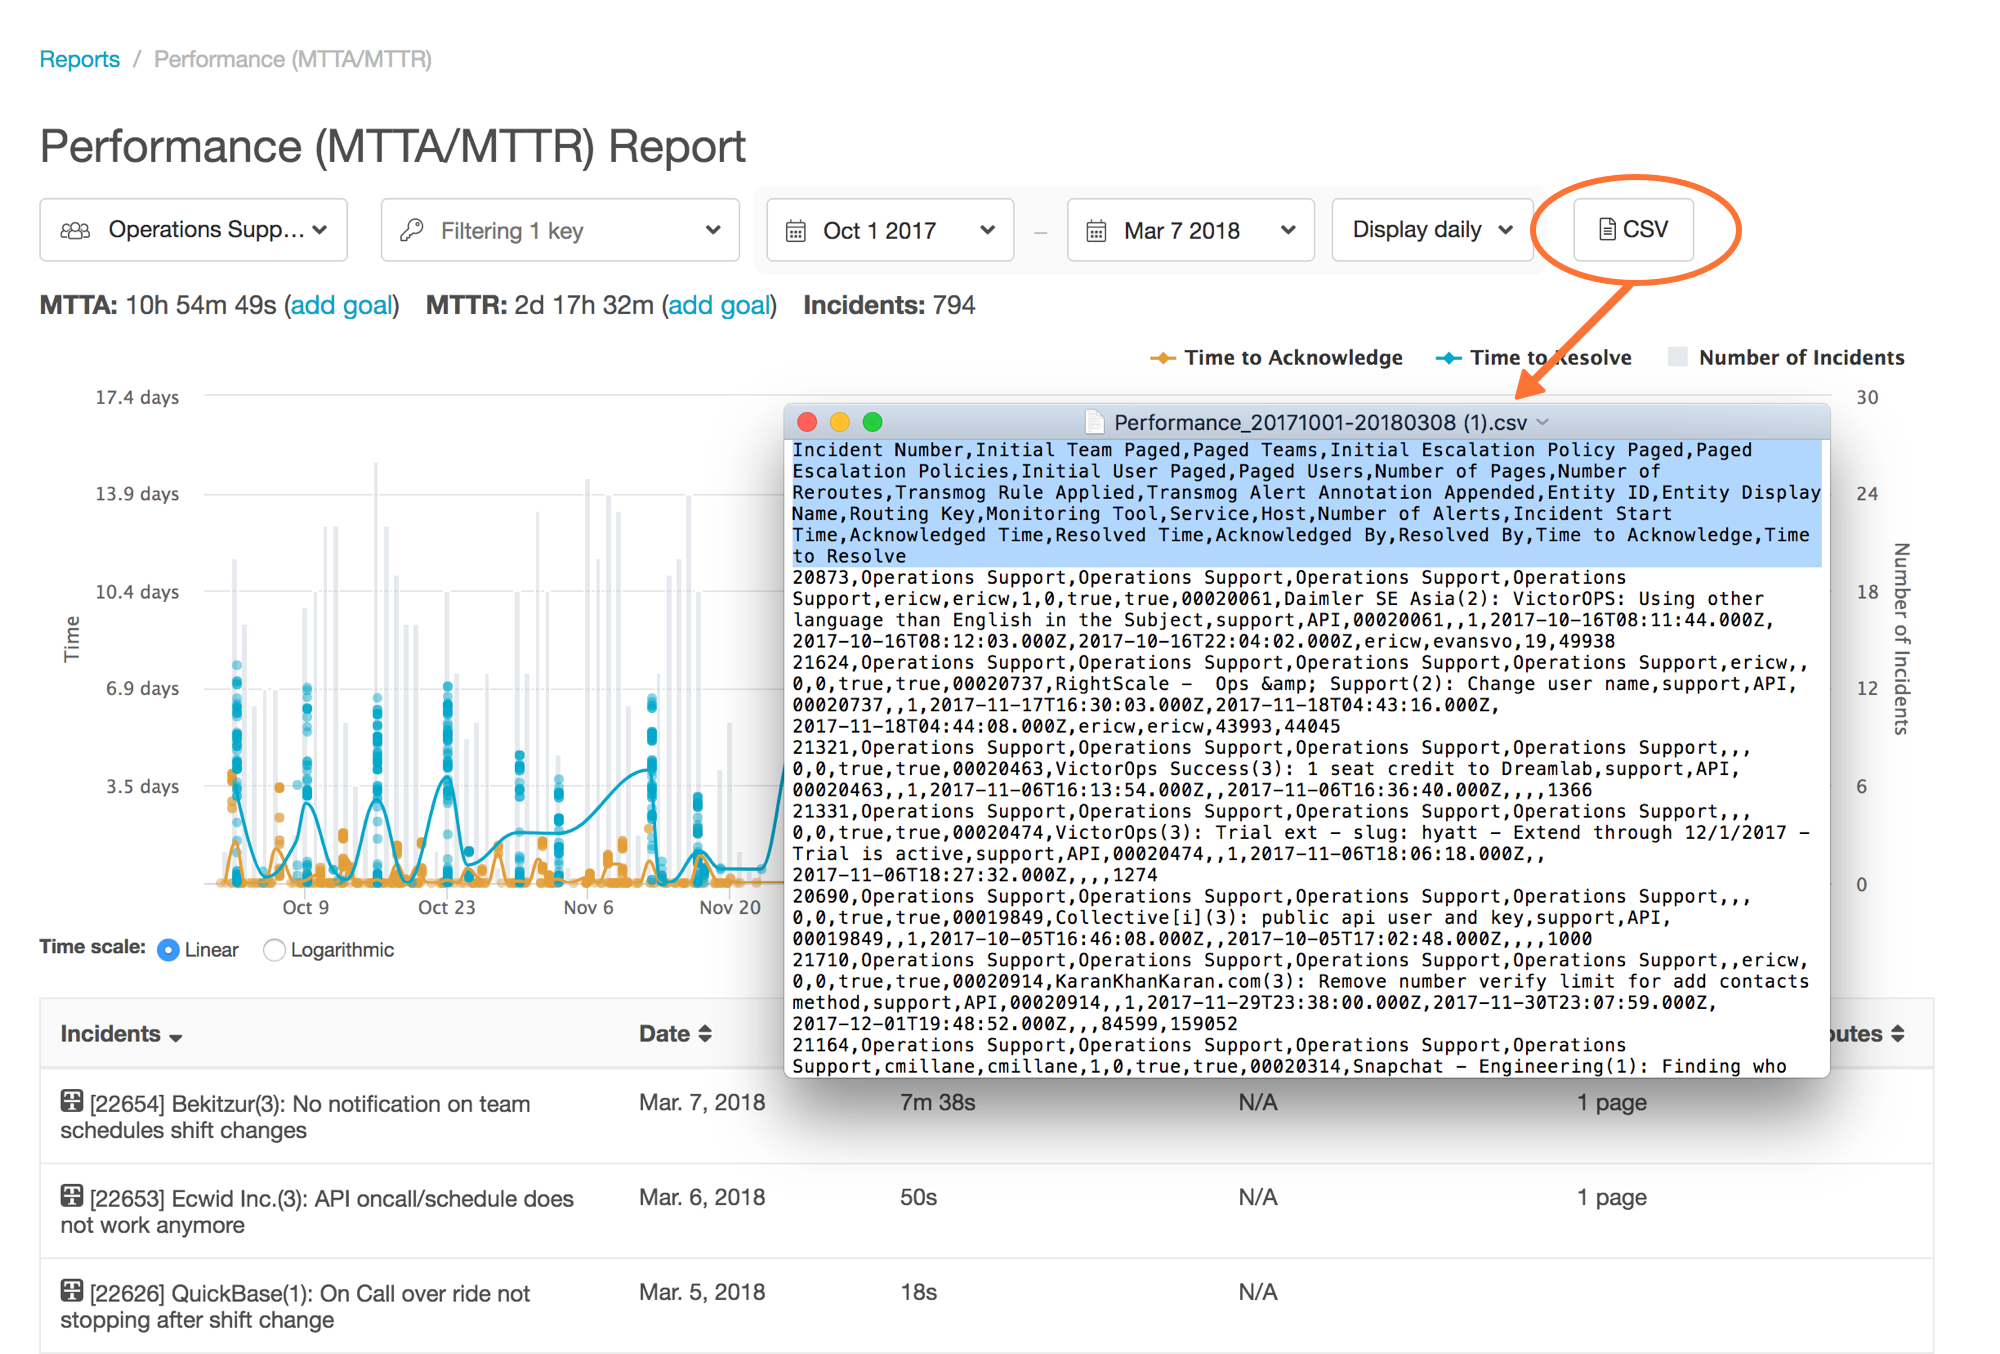 CSV Download for Performance Reporting - MTTA/MTTR reporting